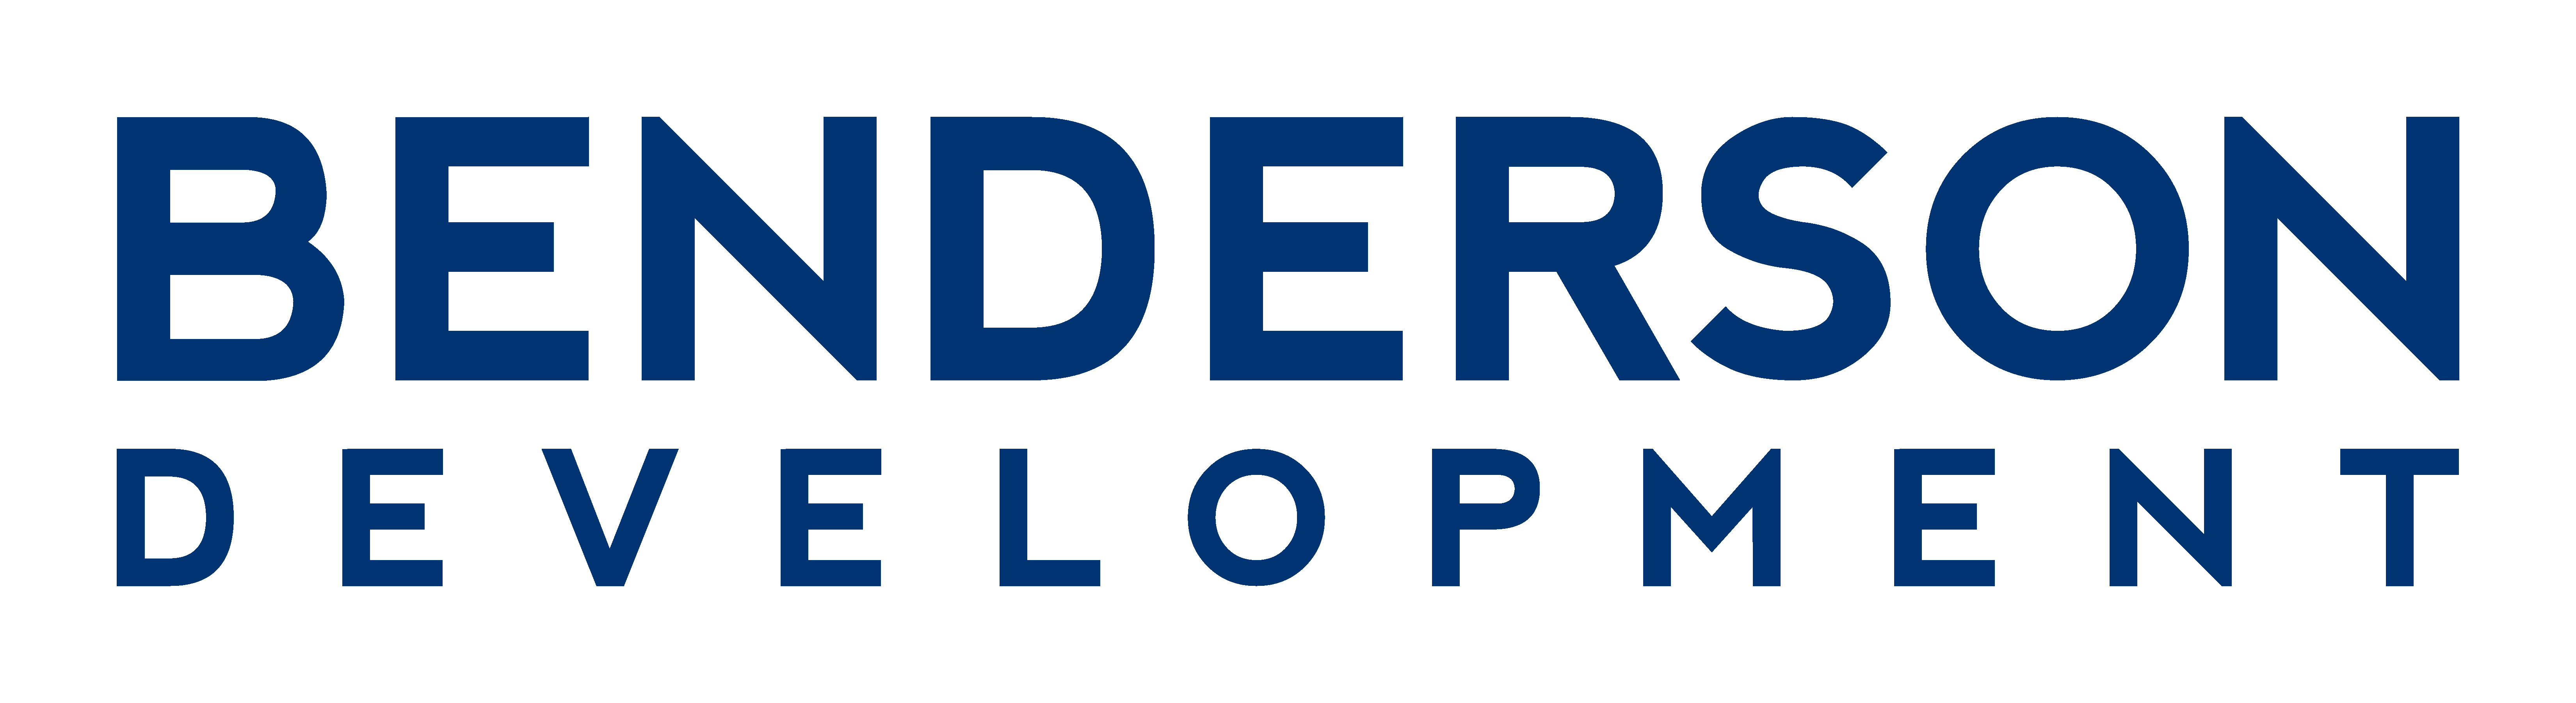 Logo-Benderson Development Company